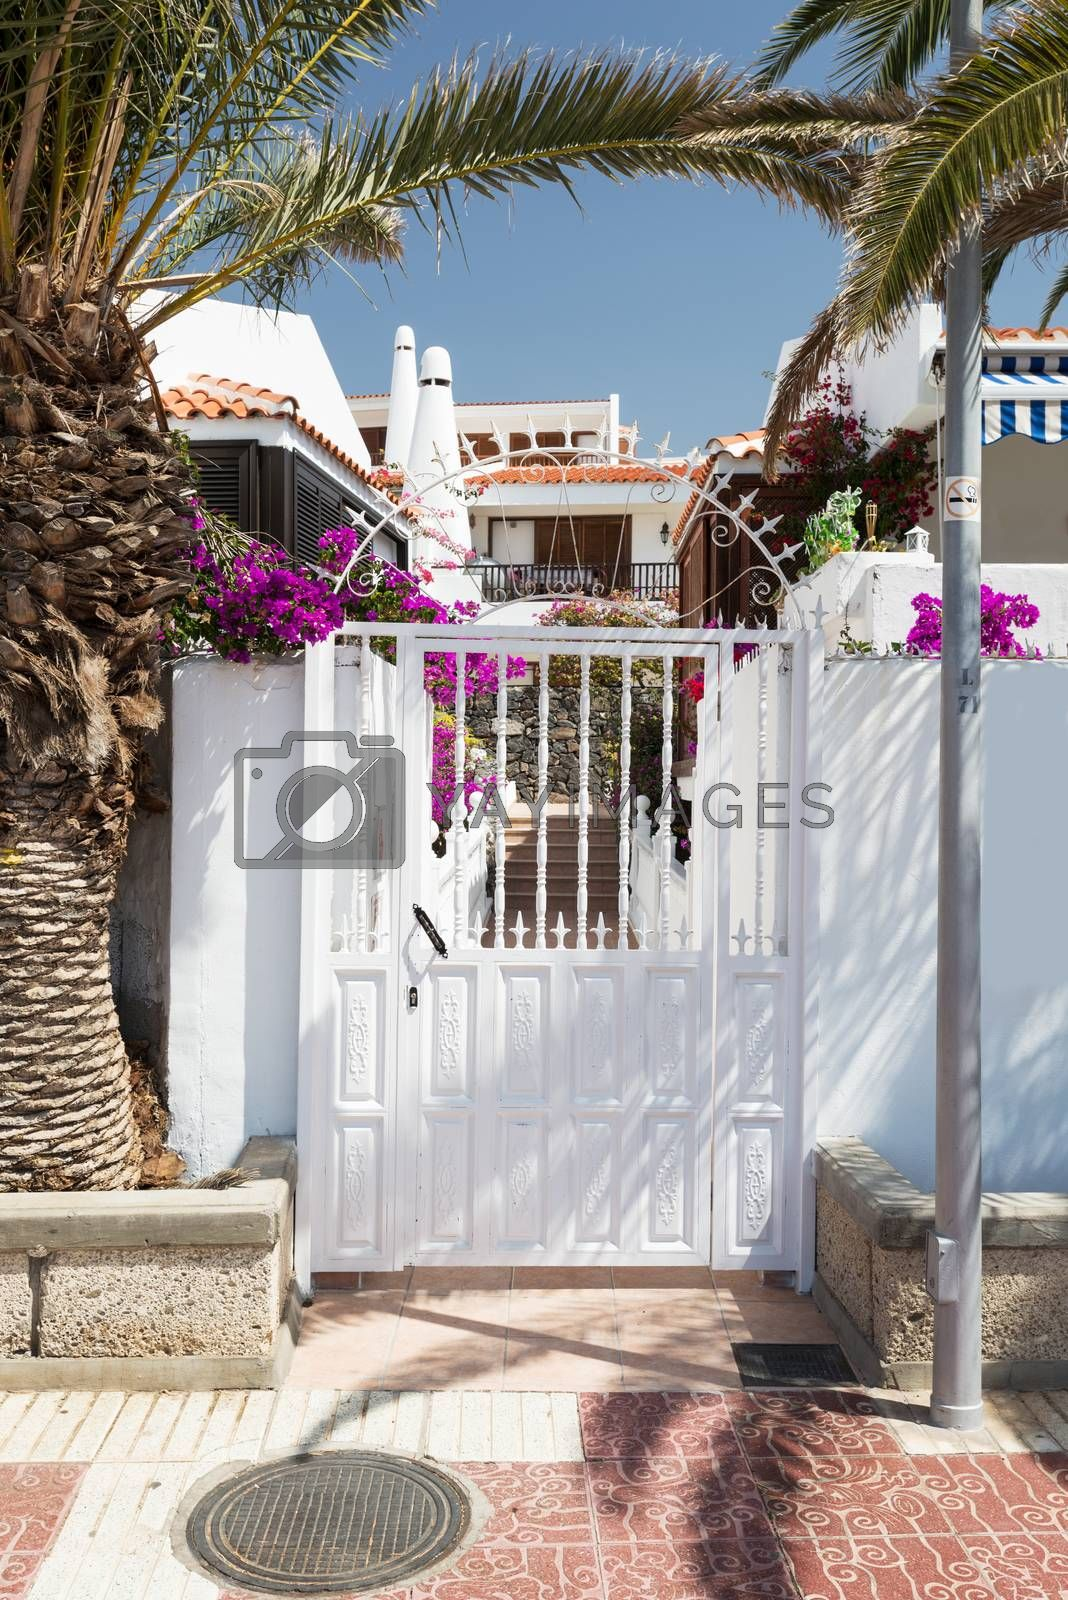 Royalty free image of gate entrance to residential house on Tenerife by Nanisimova